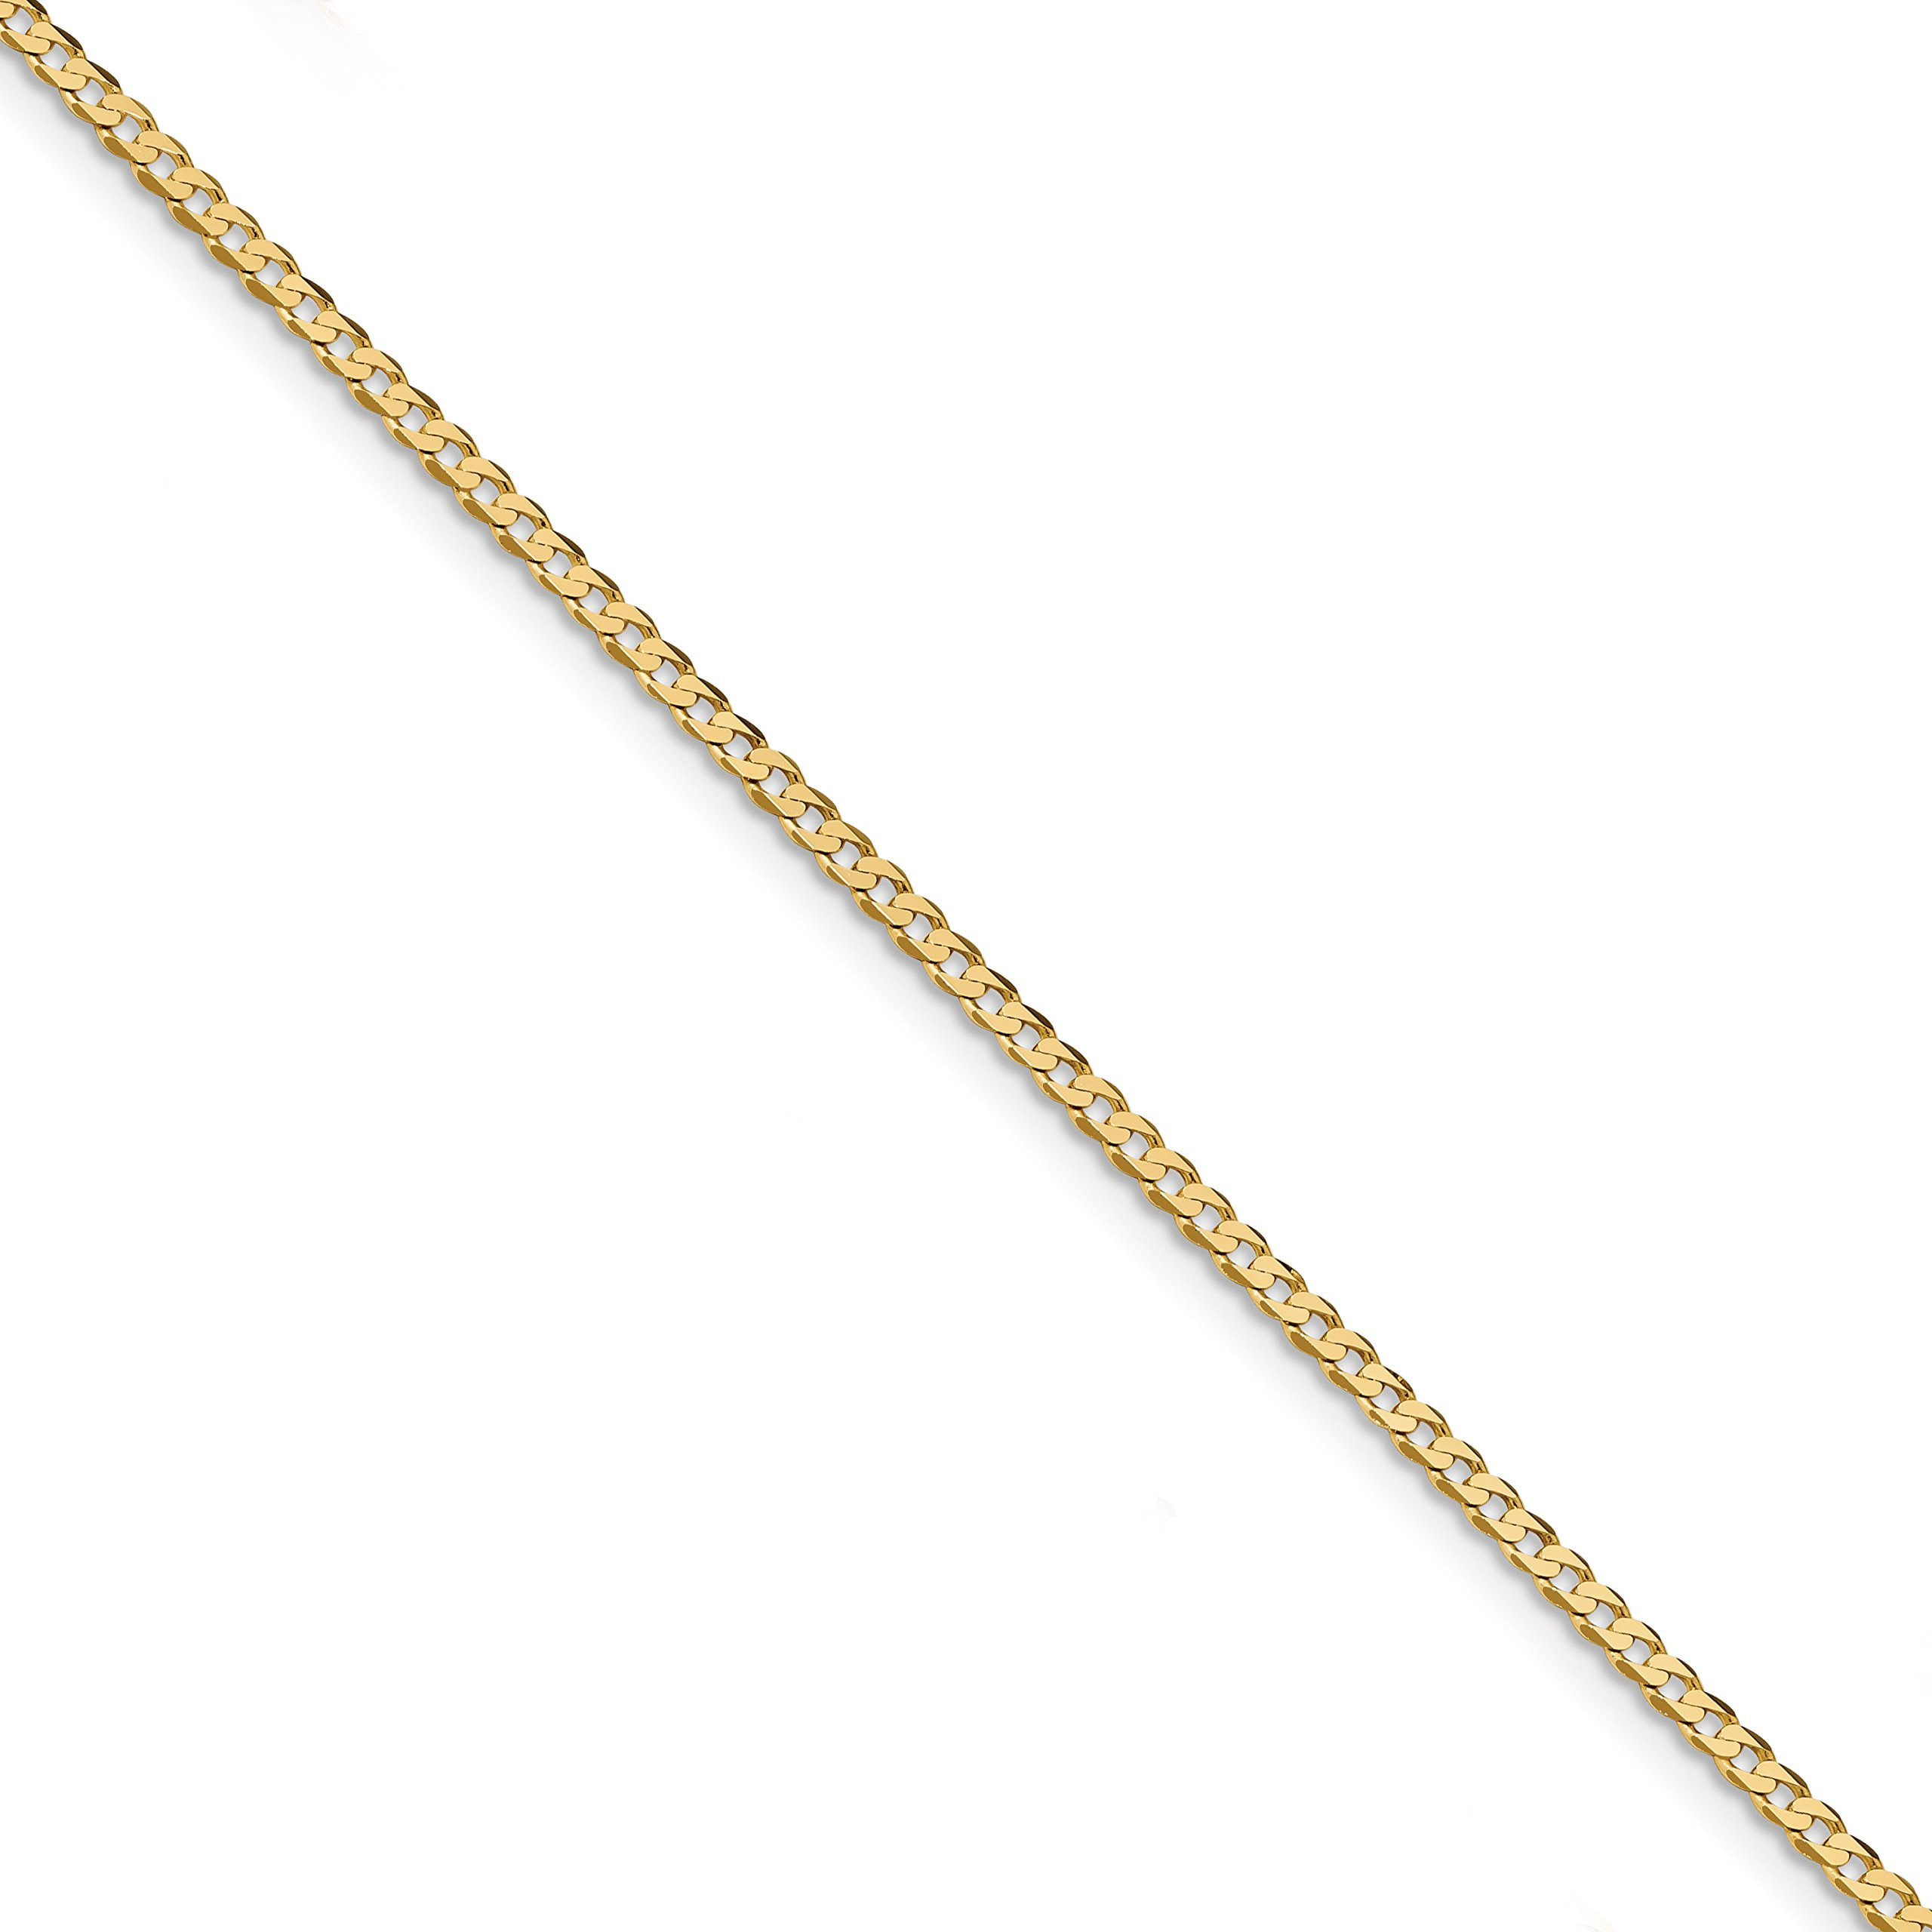 ICE CARATS 14k Yellow Gold 2.2mm Beveled Link Curb Chain Anklet Ankle Beach Bracelet 10 Inch Fine Jewelry Gift Set For Women Heart